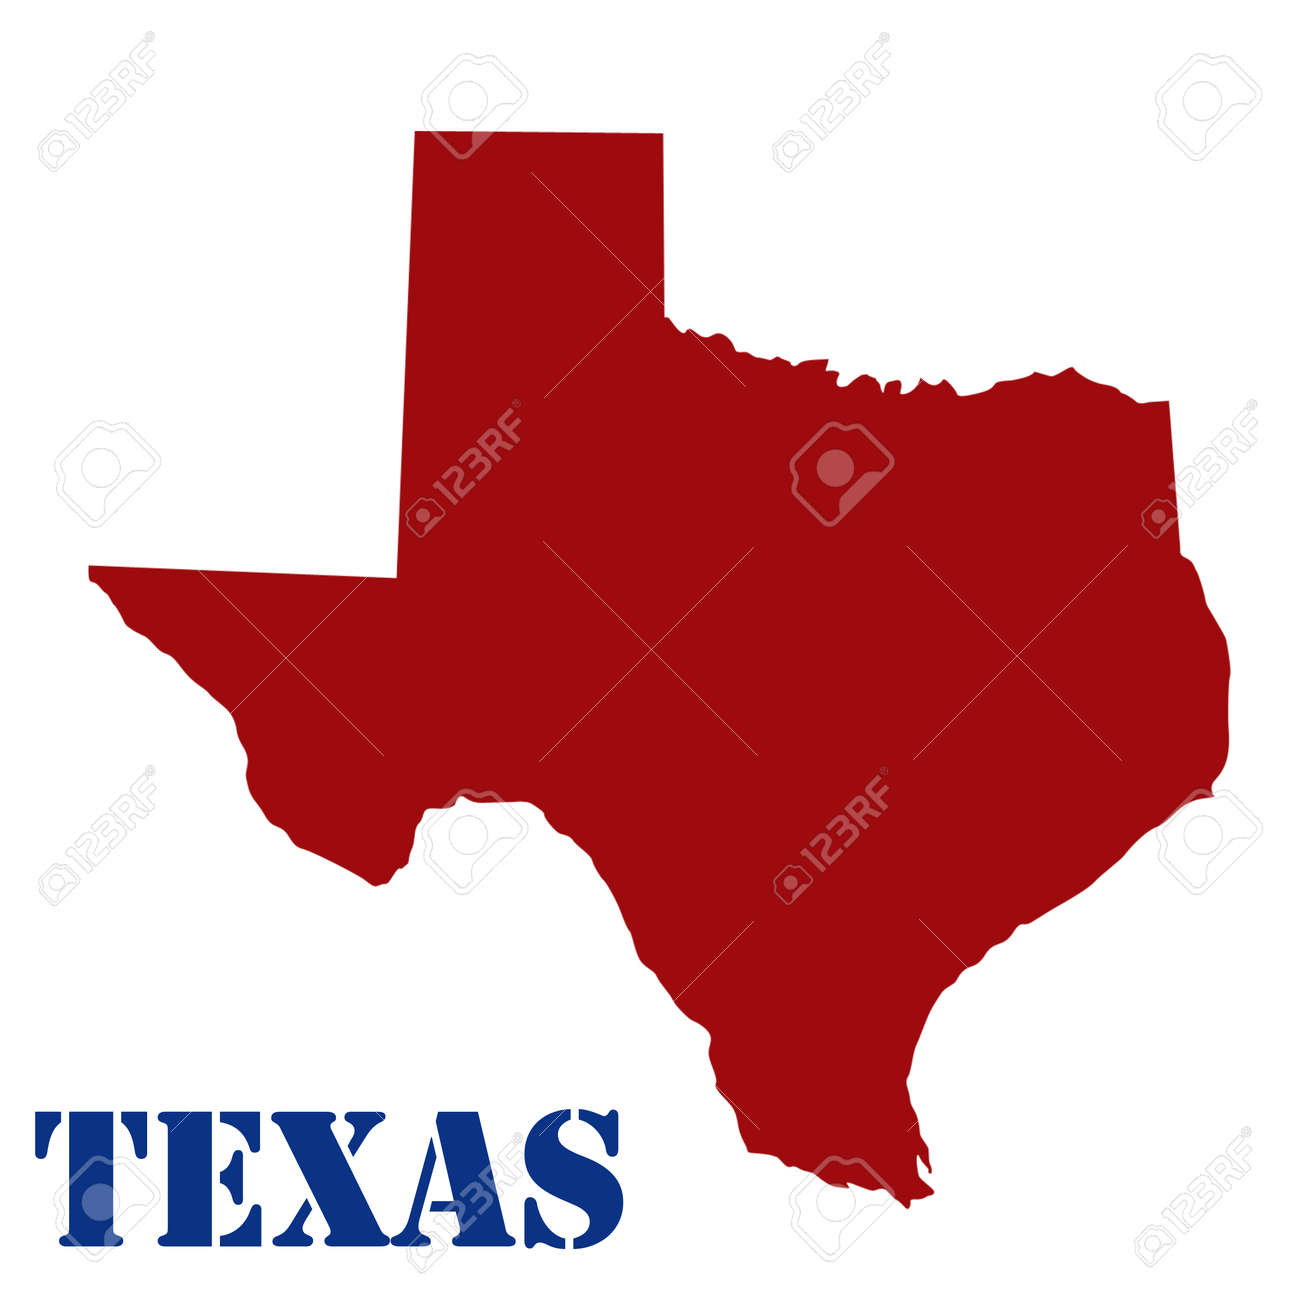 Map Of Texas On White Background Vector Illustration Royalty Free